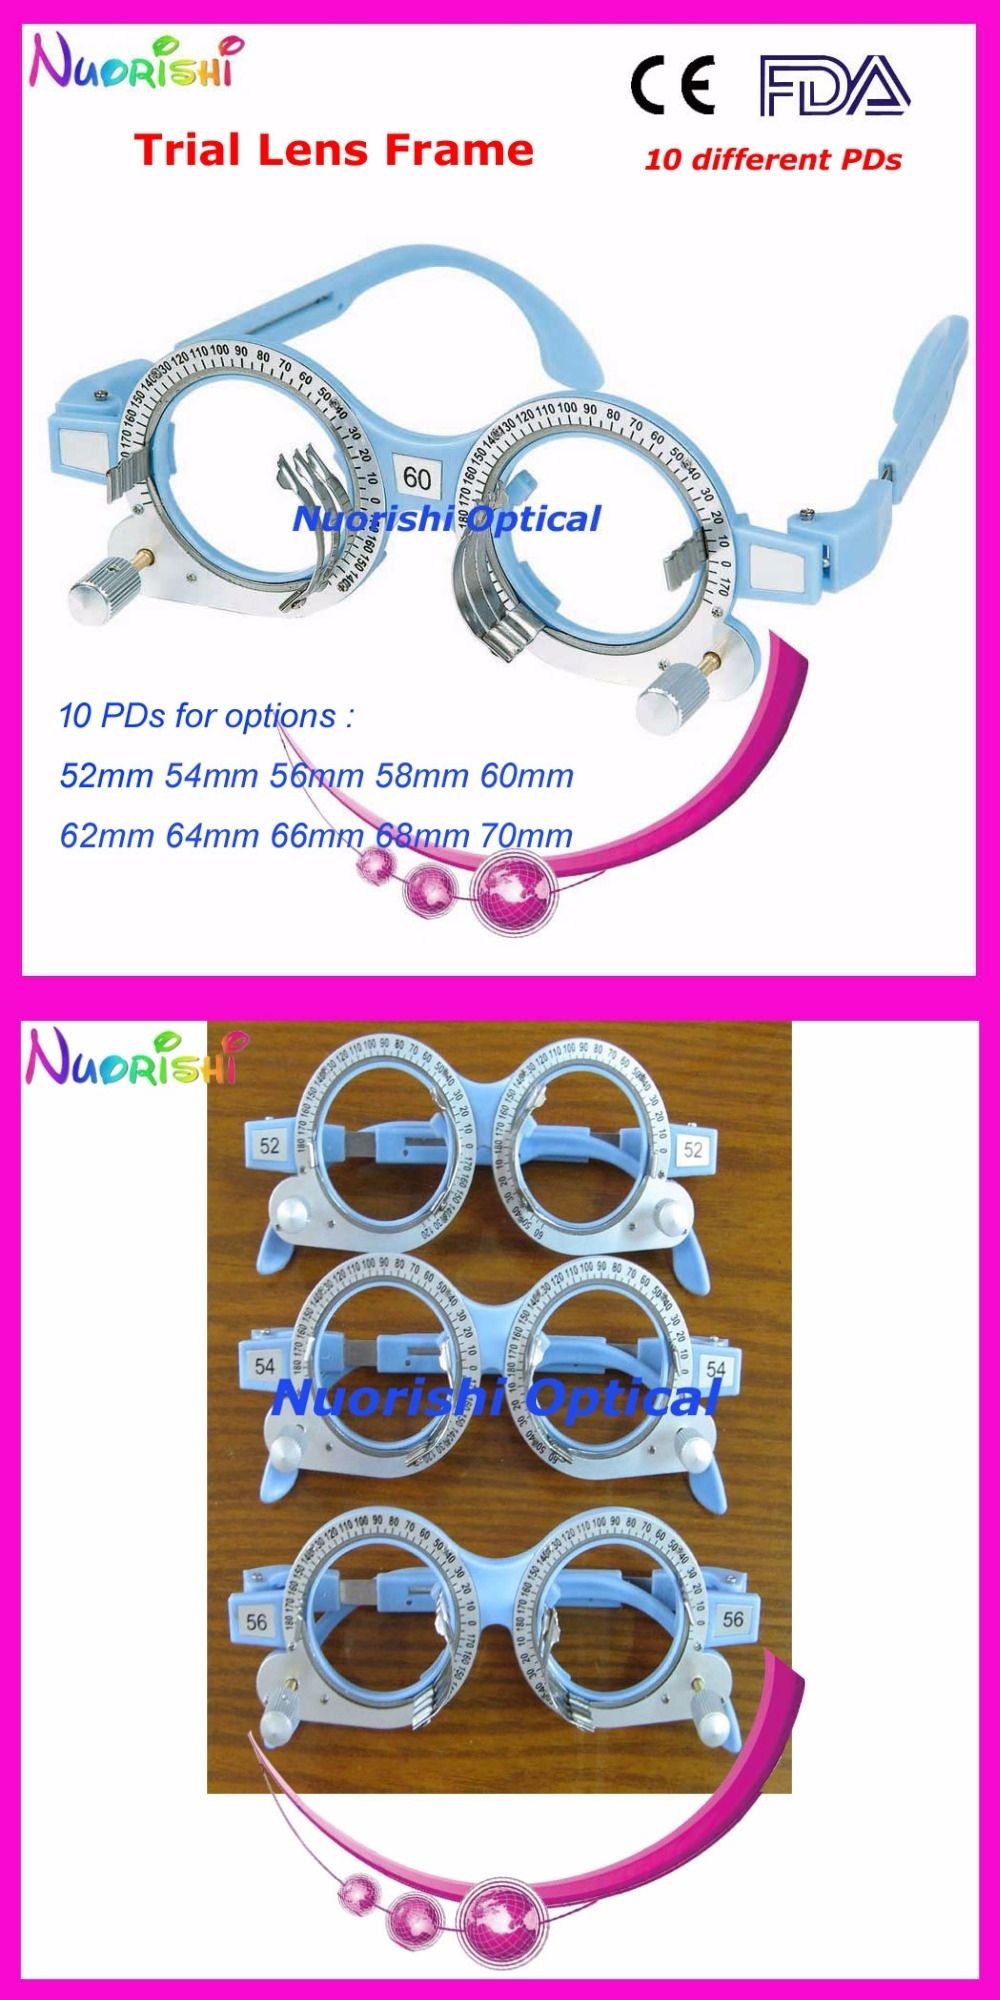 3baa39f36e3 XD03 Retail Light Blue Fixed PD Distance Optical Optometry Trial Lens Frame  10 Different Colors For